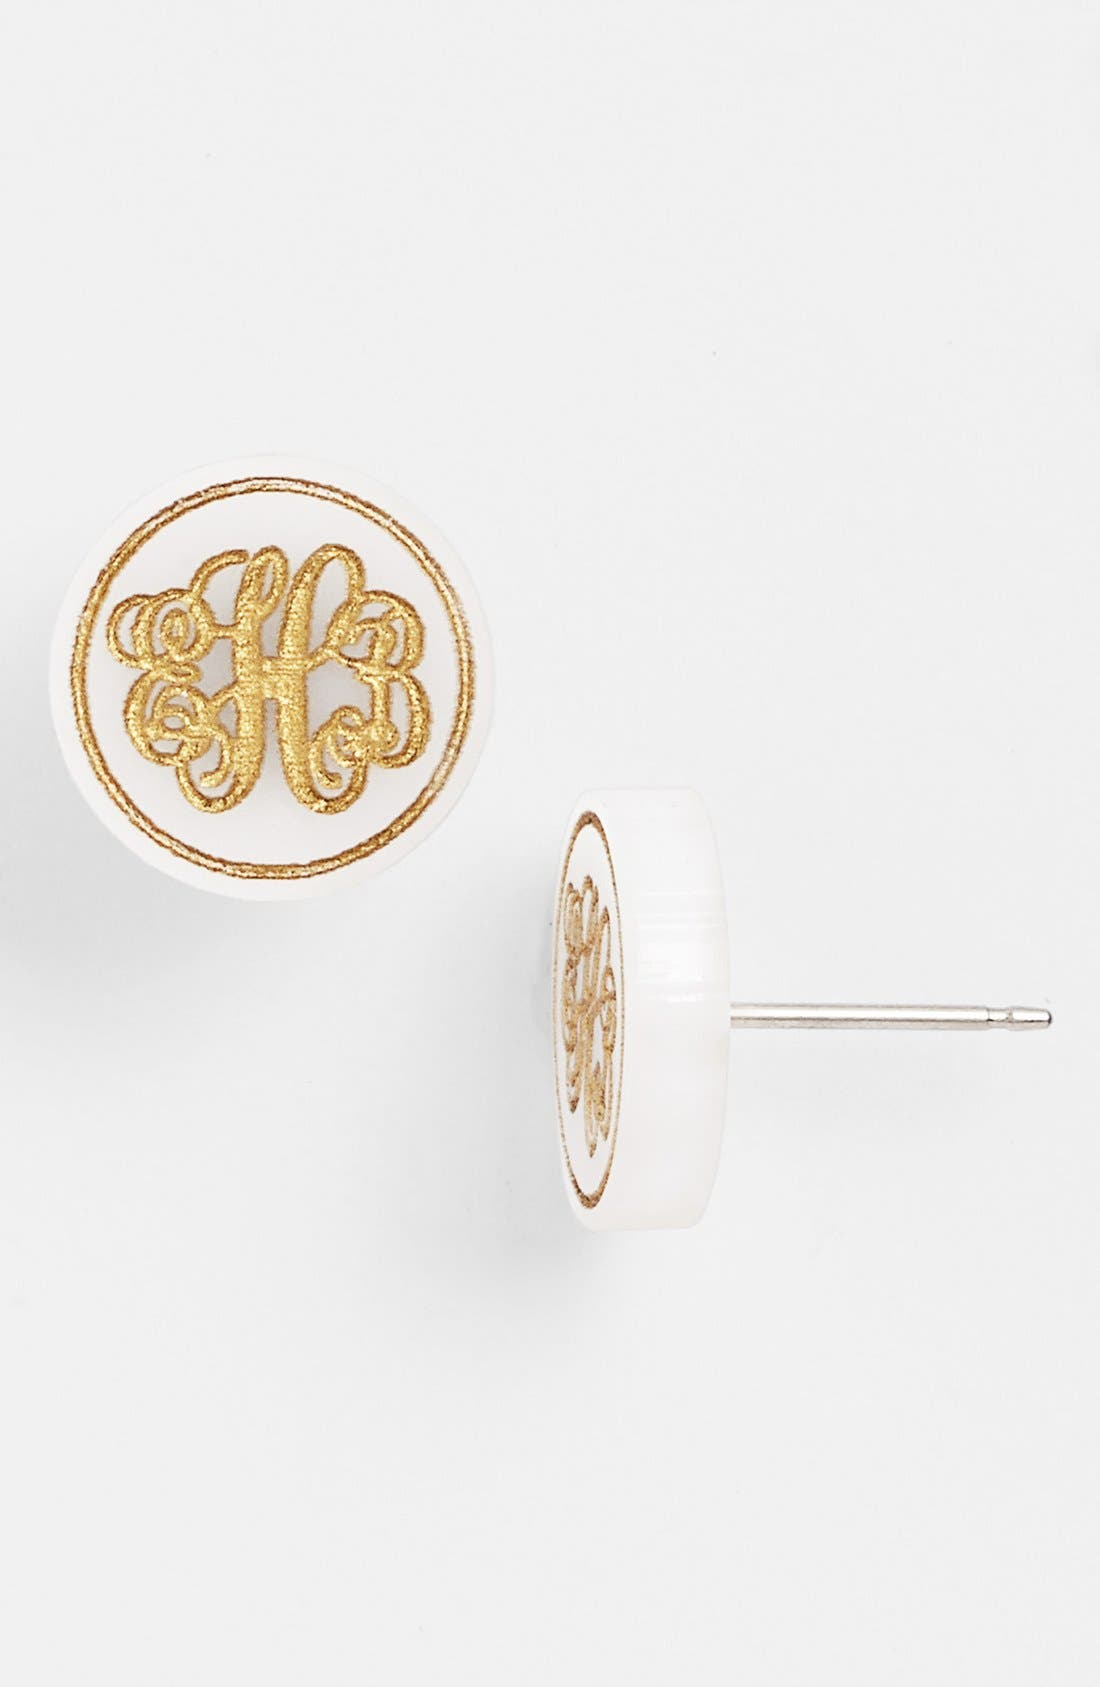 MOON AND LOLA 'Chelsea' Small Personalized Monogram Stud